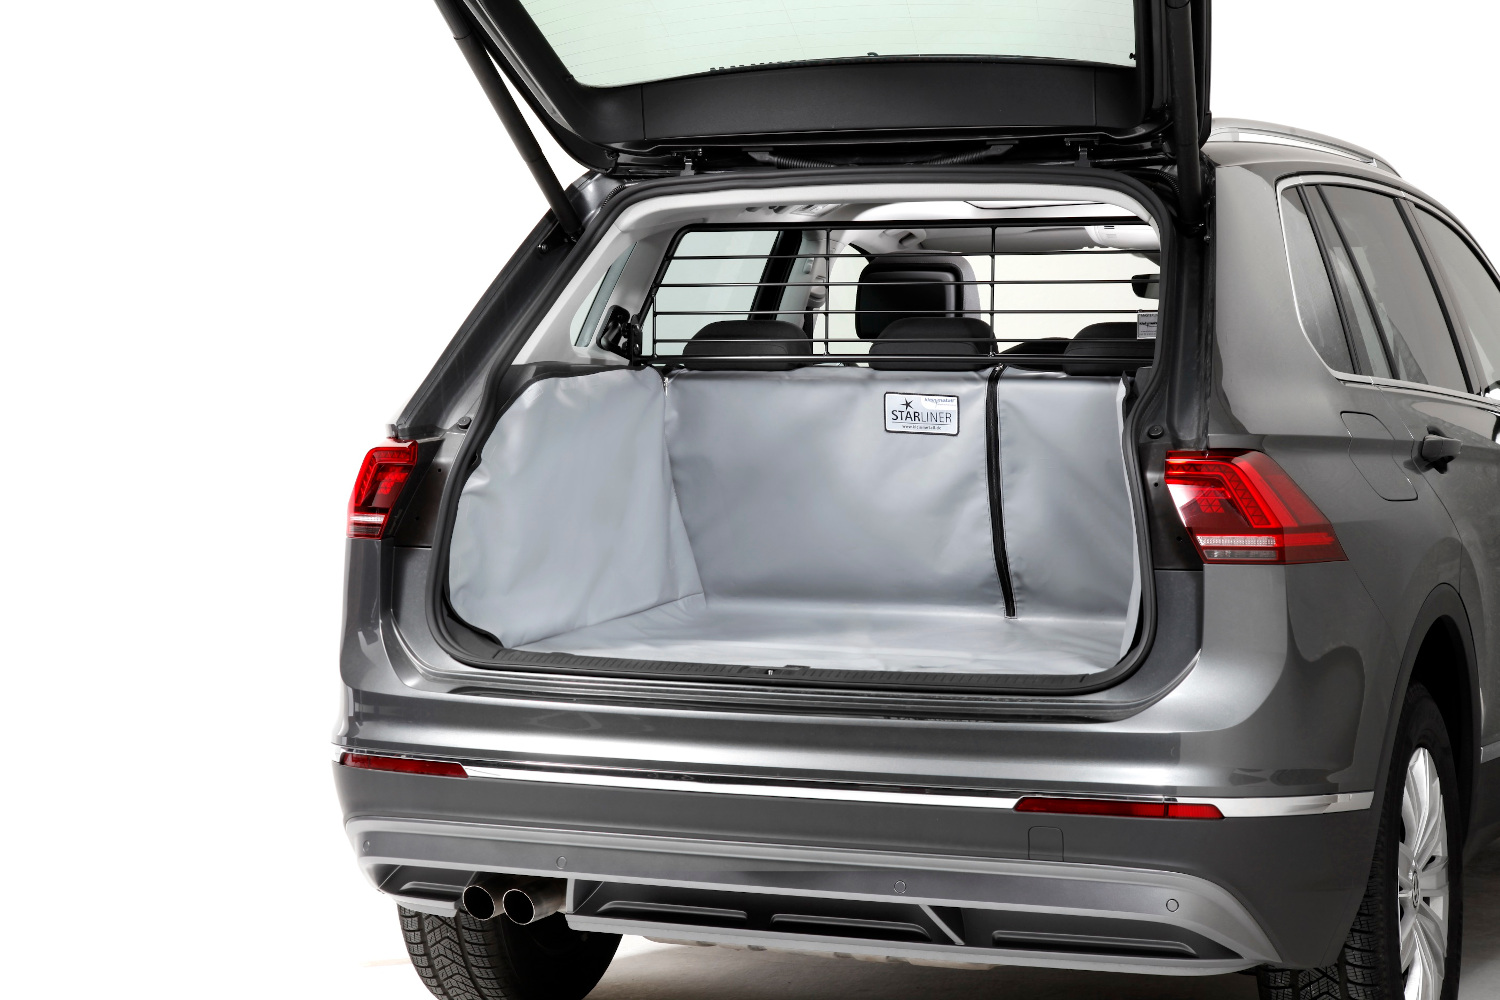 Boot cover Audi A3 Sportback (8V) 2012-present 5-door hatchback Kleinmetall Starliner - grey